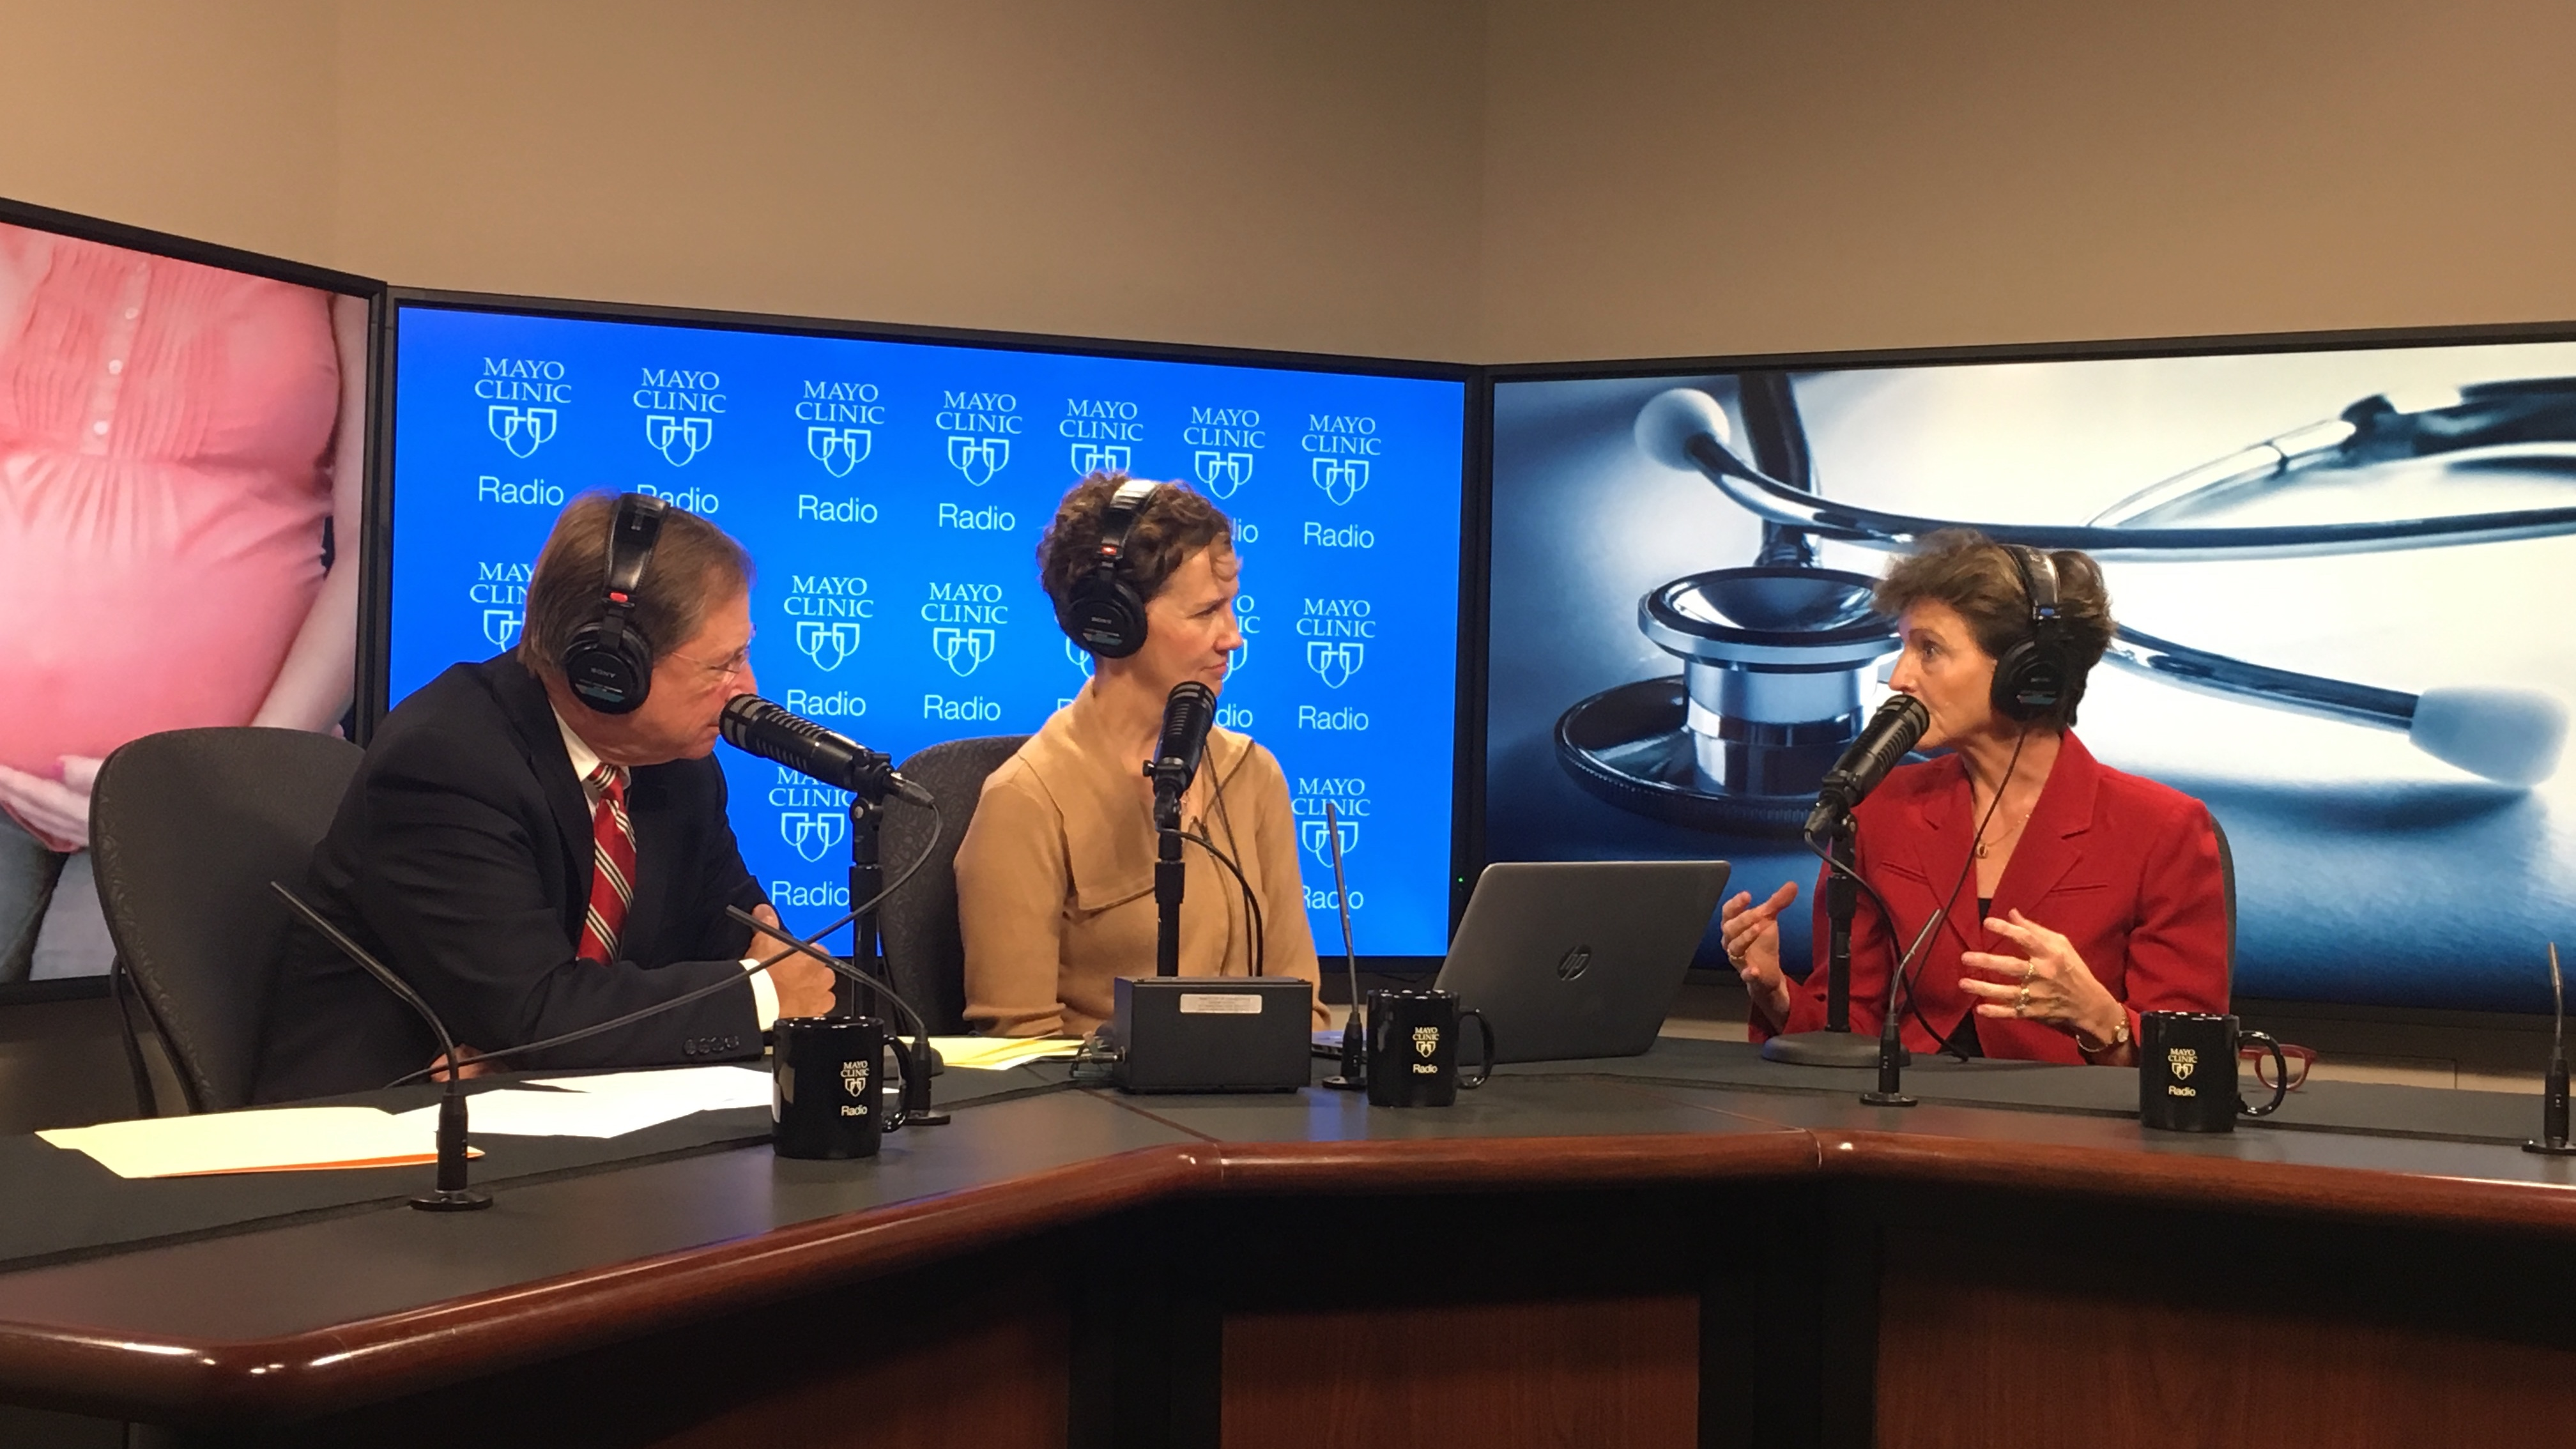 Dr. Sharonne Hayes being interviewed on Mayo Clinic Radio